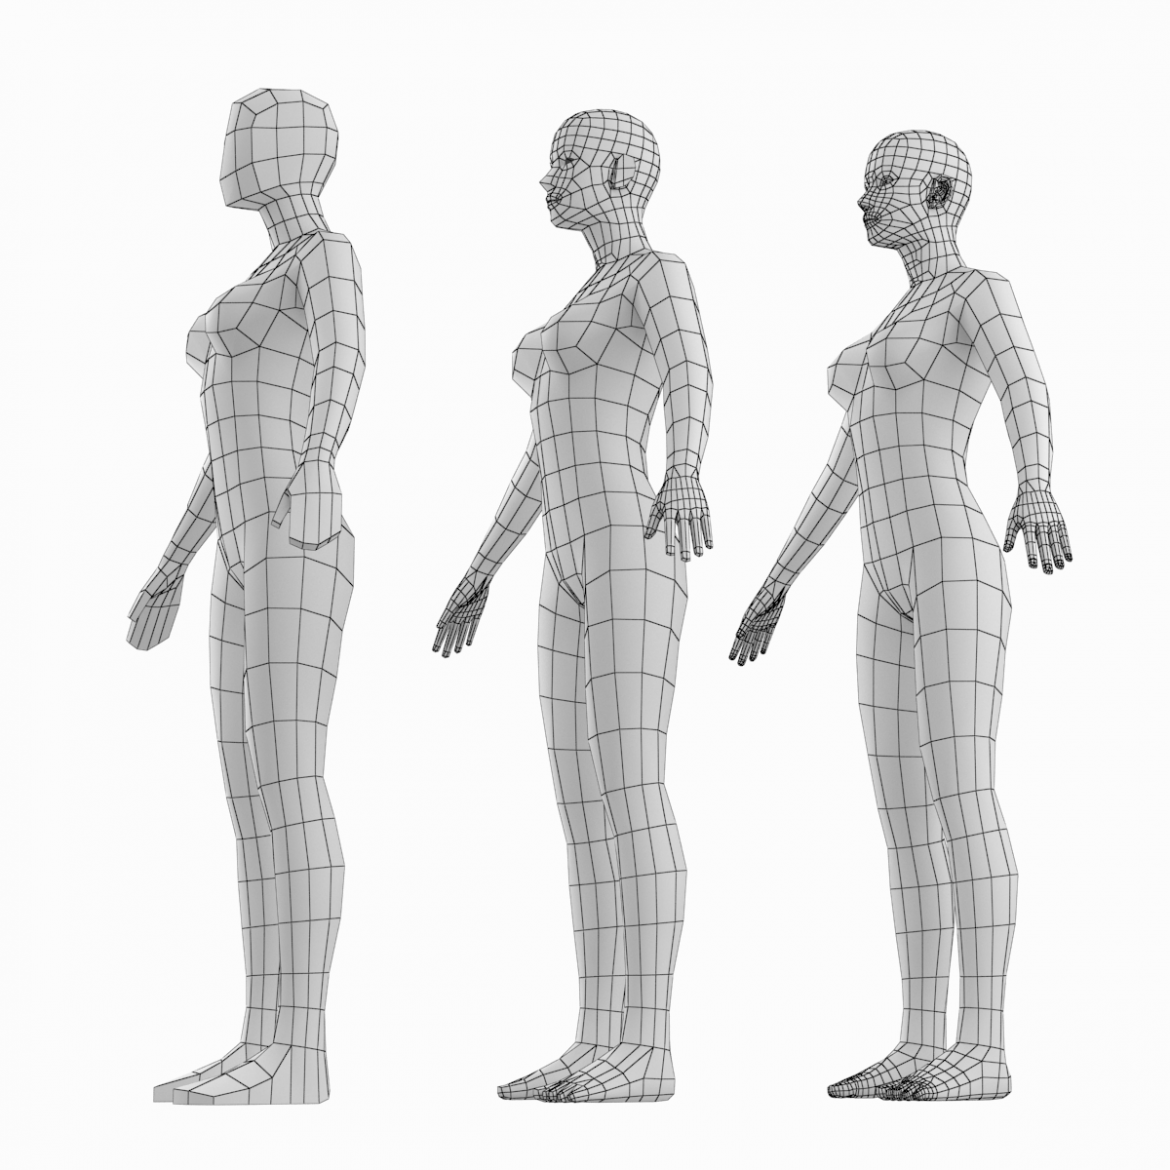 female base mesh natural proportions in a-pose 3d model 3ds max dxf dwg fbx c4d dae ma mb  obj 301361